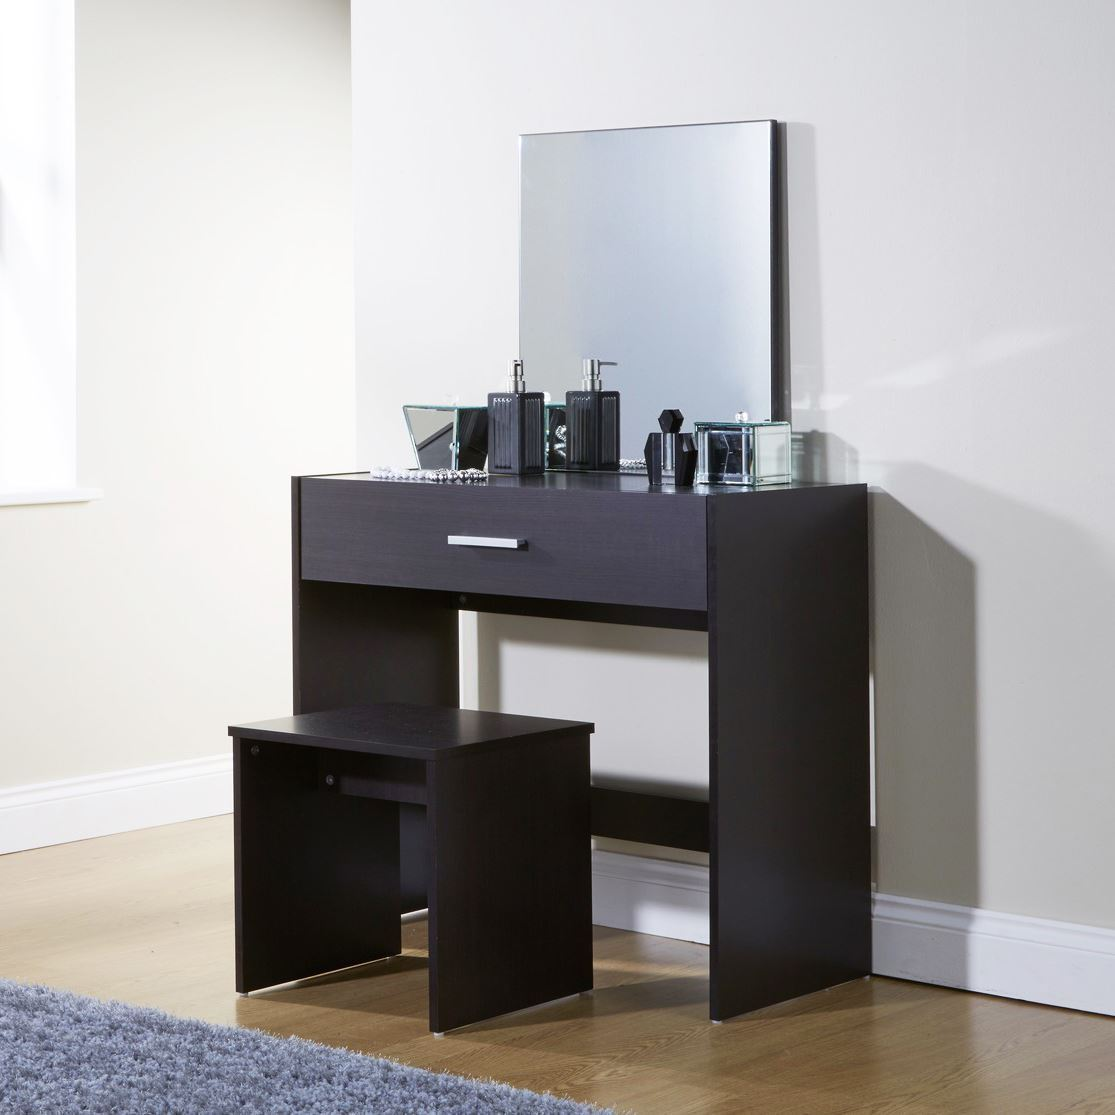 Simple julia espresso dressing table set vanity desk stool for Simple dressing table